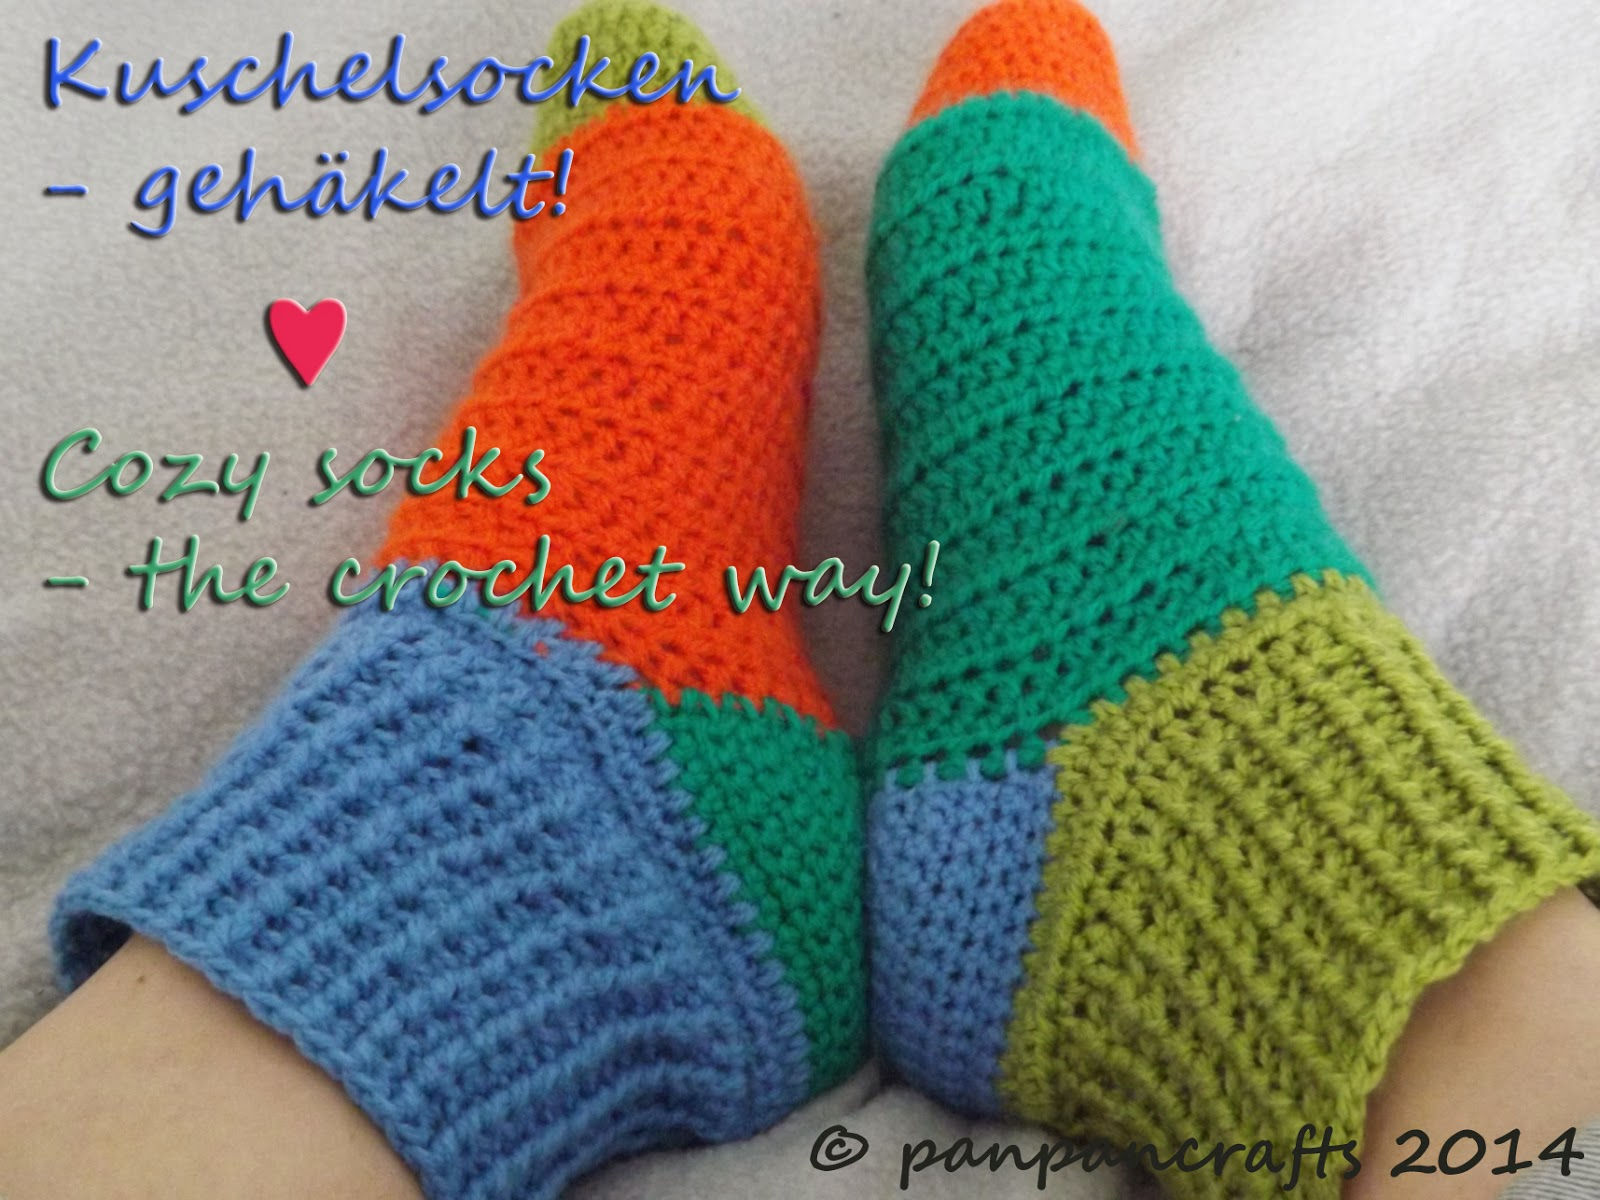 crochet cozy socks http://panpancrafts.blogspot.de/